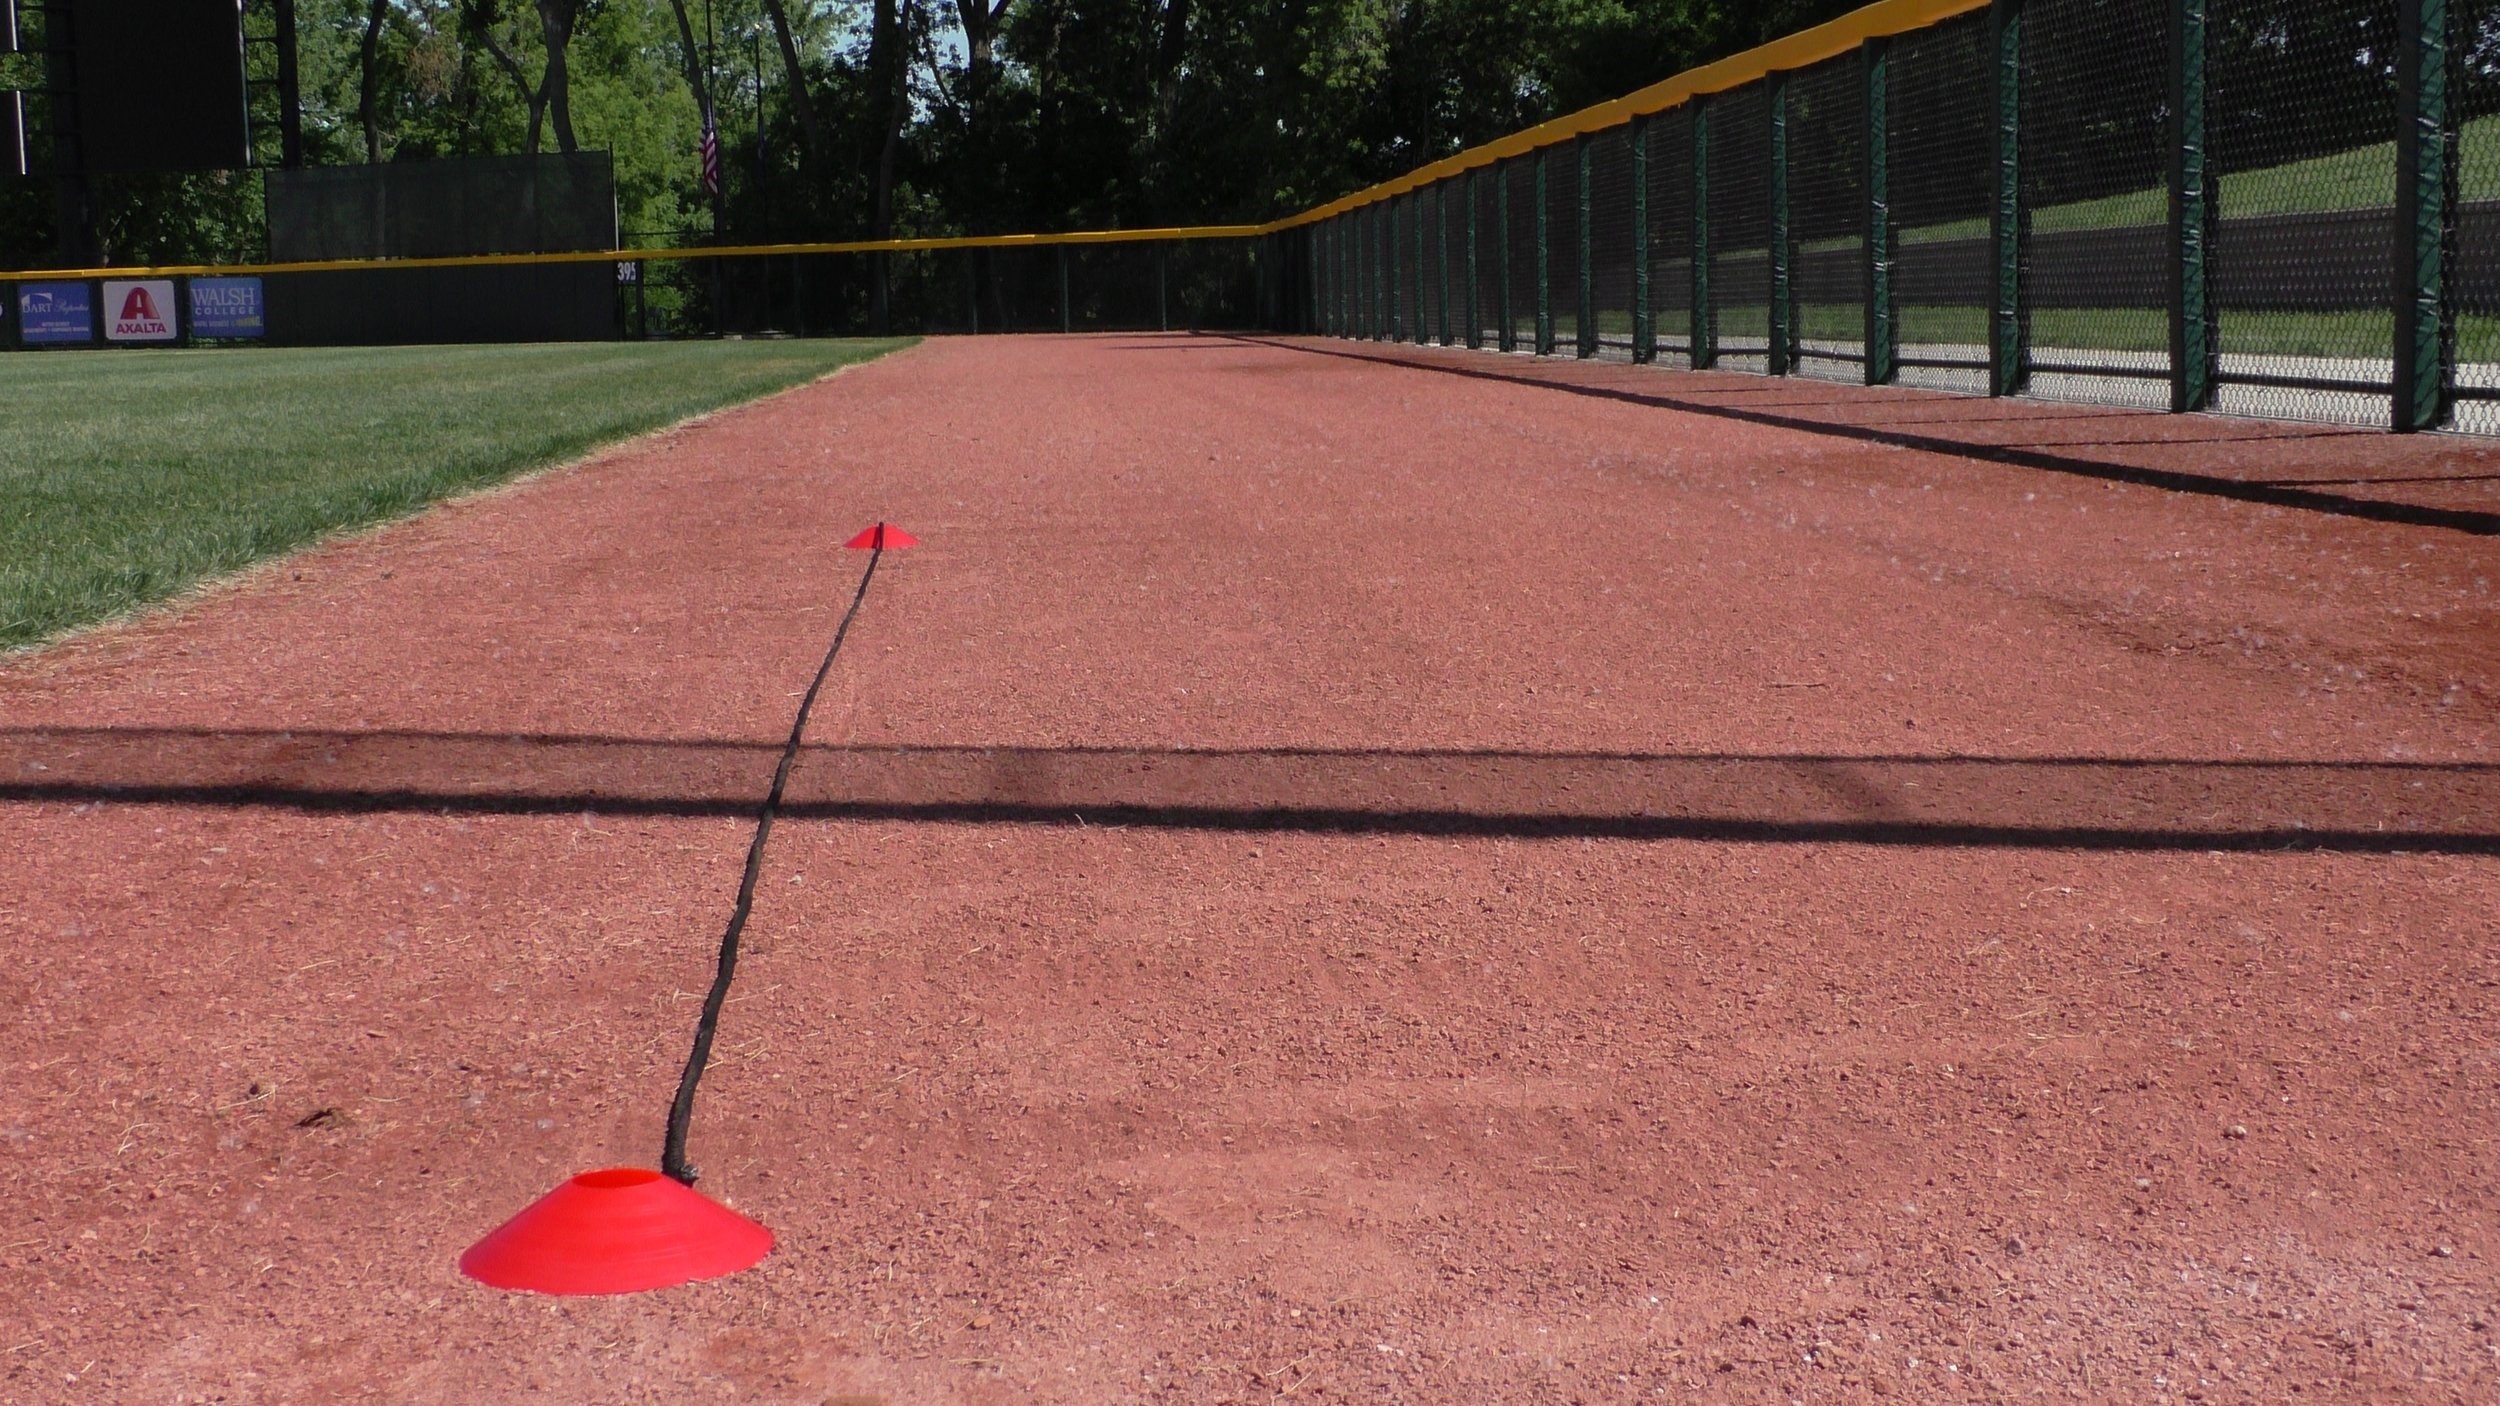 Custom Distances - Ever wondered how far you actually need to throw to maximize arm strength and performance? Or does throwing at farther distances even translate to velocity improvement? After inputting your individual characteristics, our distance formula calculator will provide customized throwing distances specifically tailored to you. These distances throughout the program will ensure you are throwing at realistic distances while working towards improving yourself as an overall thrower. If you master the program, you can simply update your distances.